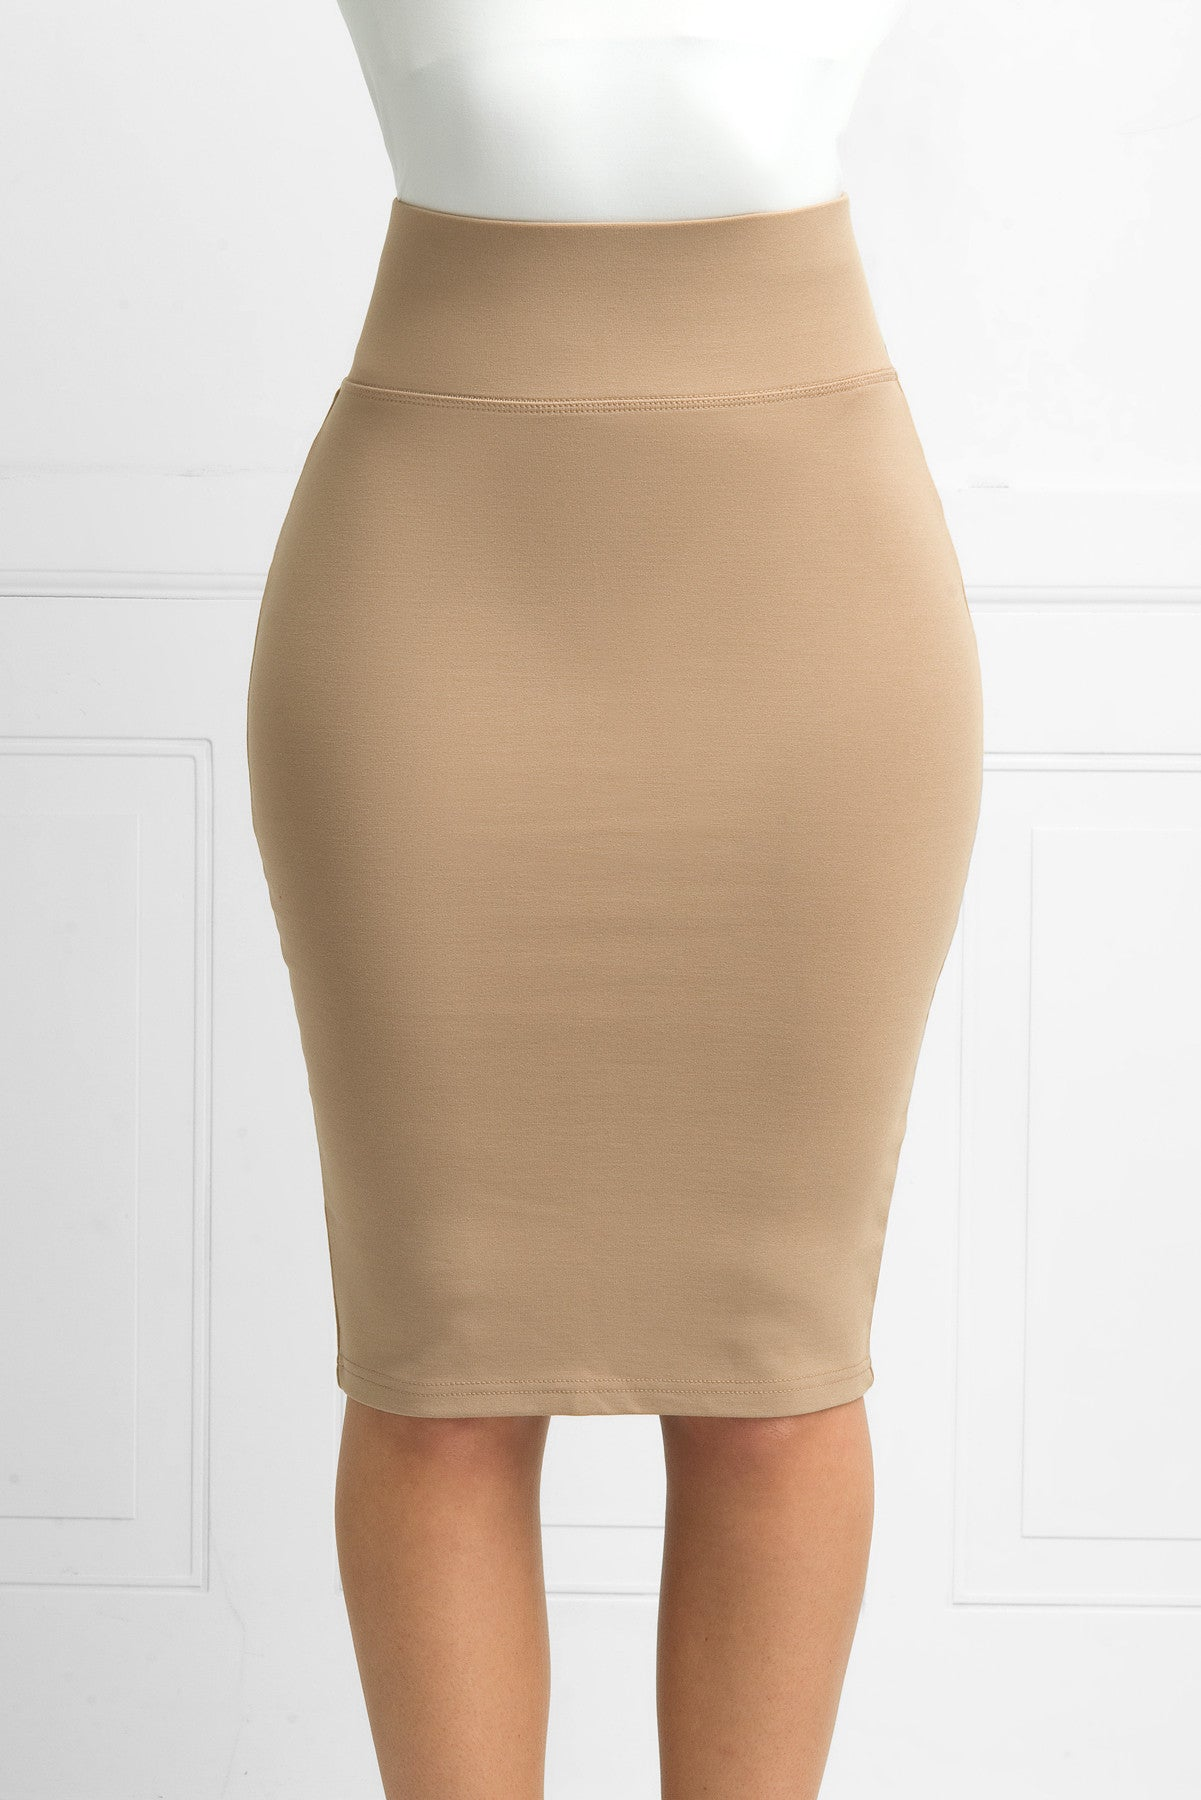 Andy Pencil Skirt Taupe - Fashion Effect Store  - 4